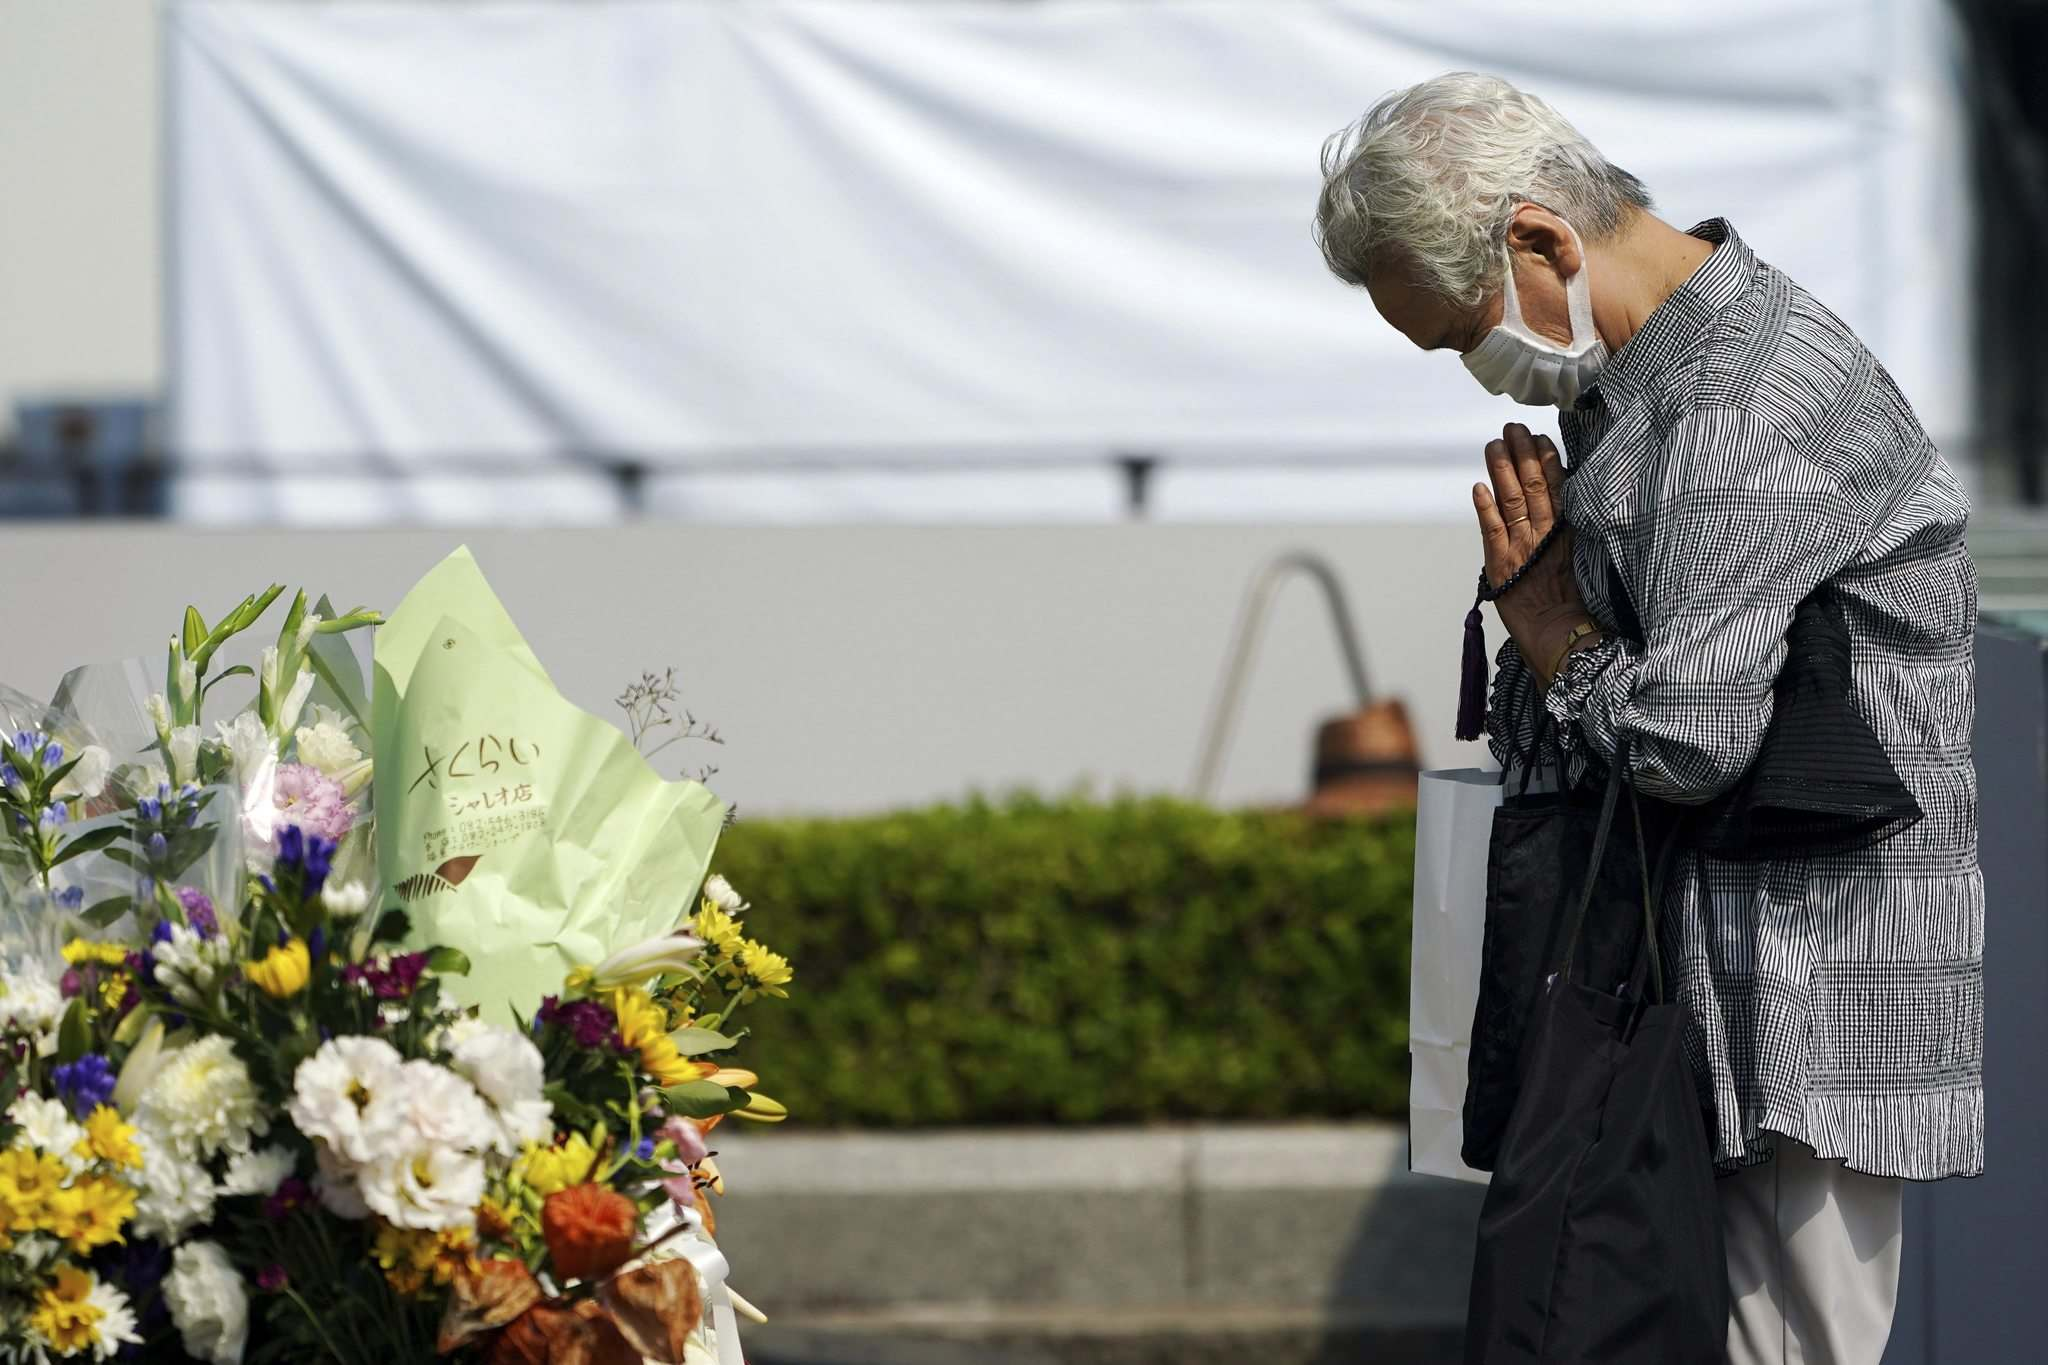 Eugene Hoshiko / The Associated Press</p><p>A visitor prays at the cenotaph near the Hiroshima Peace Memorial Museum in Japan on Wednesday. Today marks the 75th anniversary of the atomic bombing of Hiroshima.</p>